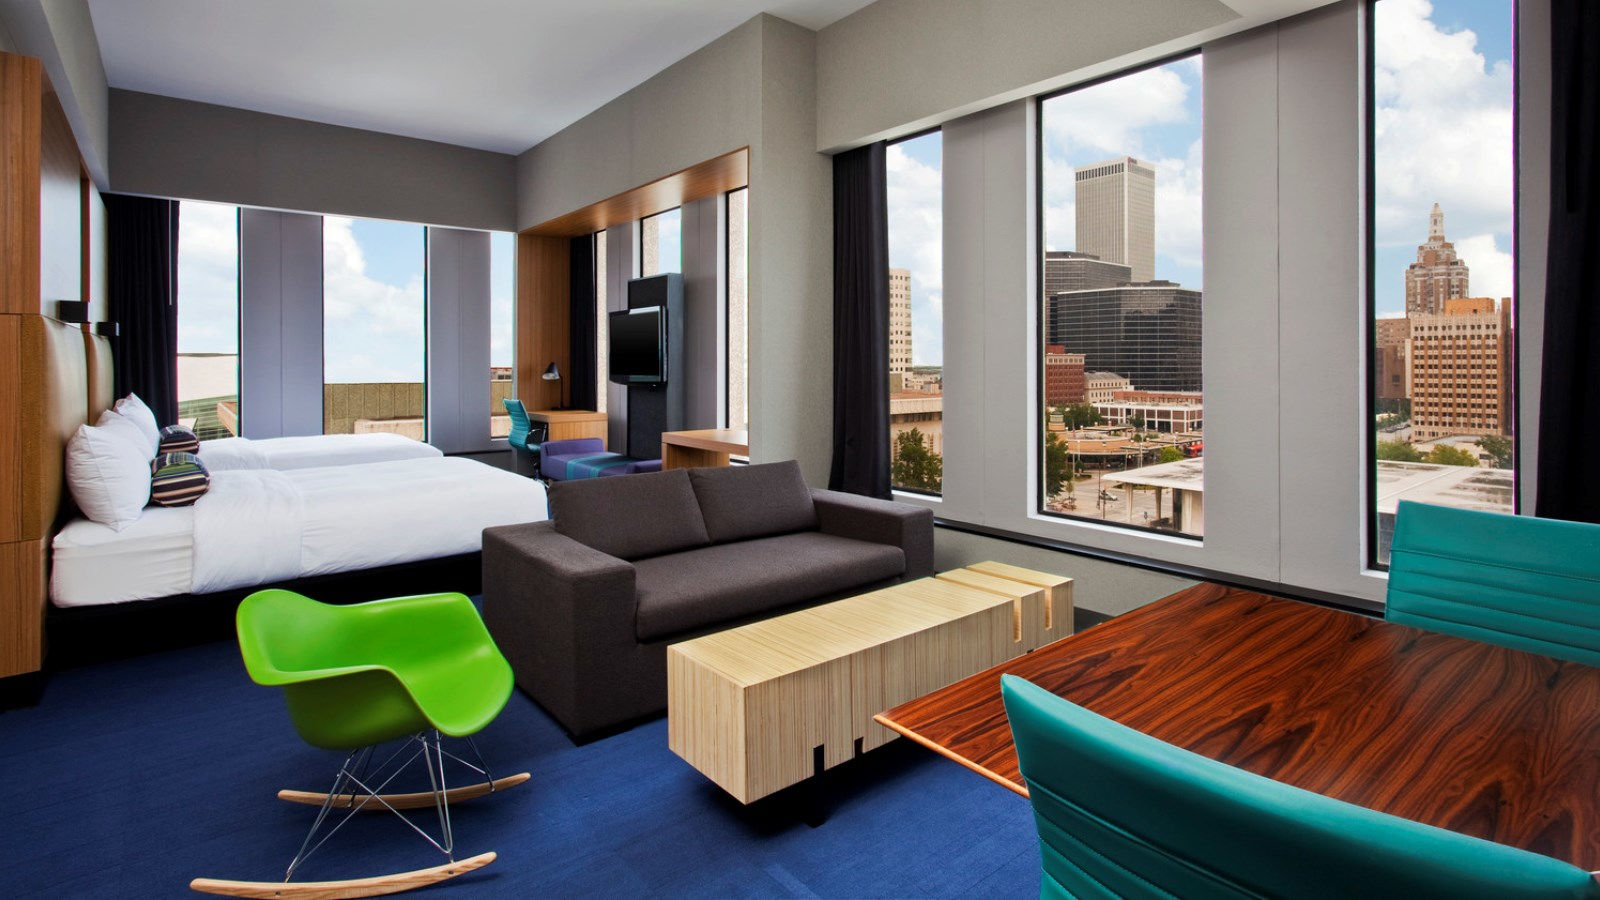 Tulsa Accommodations - Aloft Suite